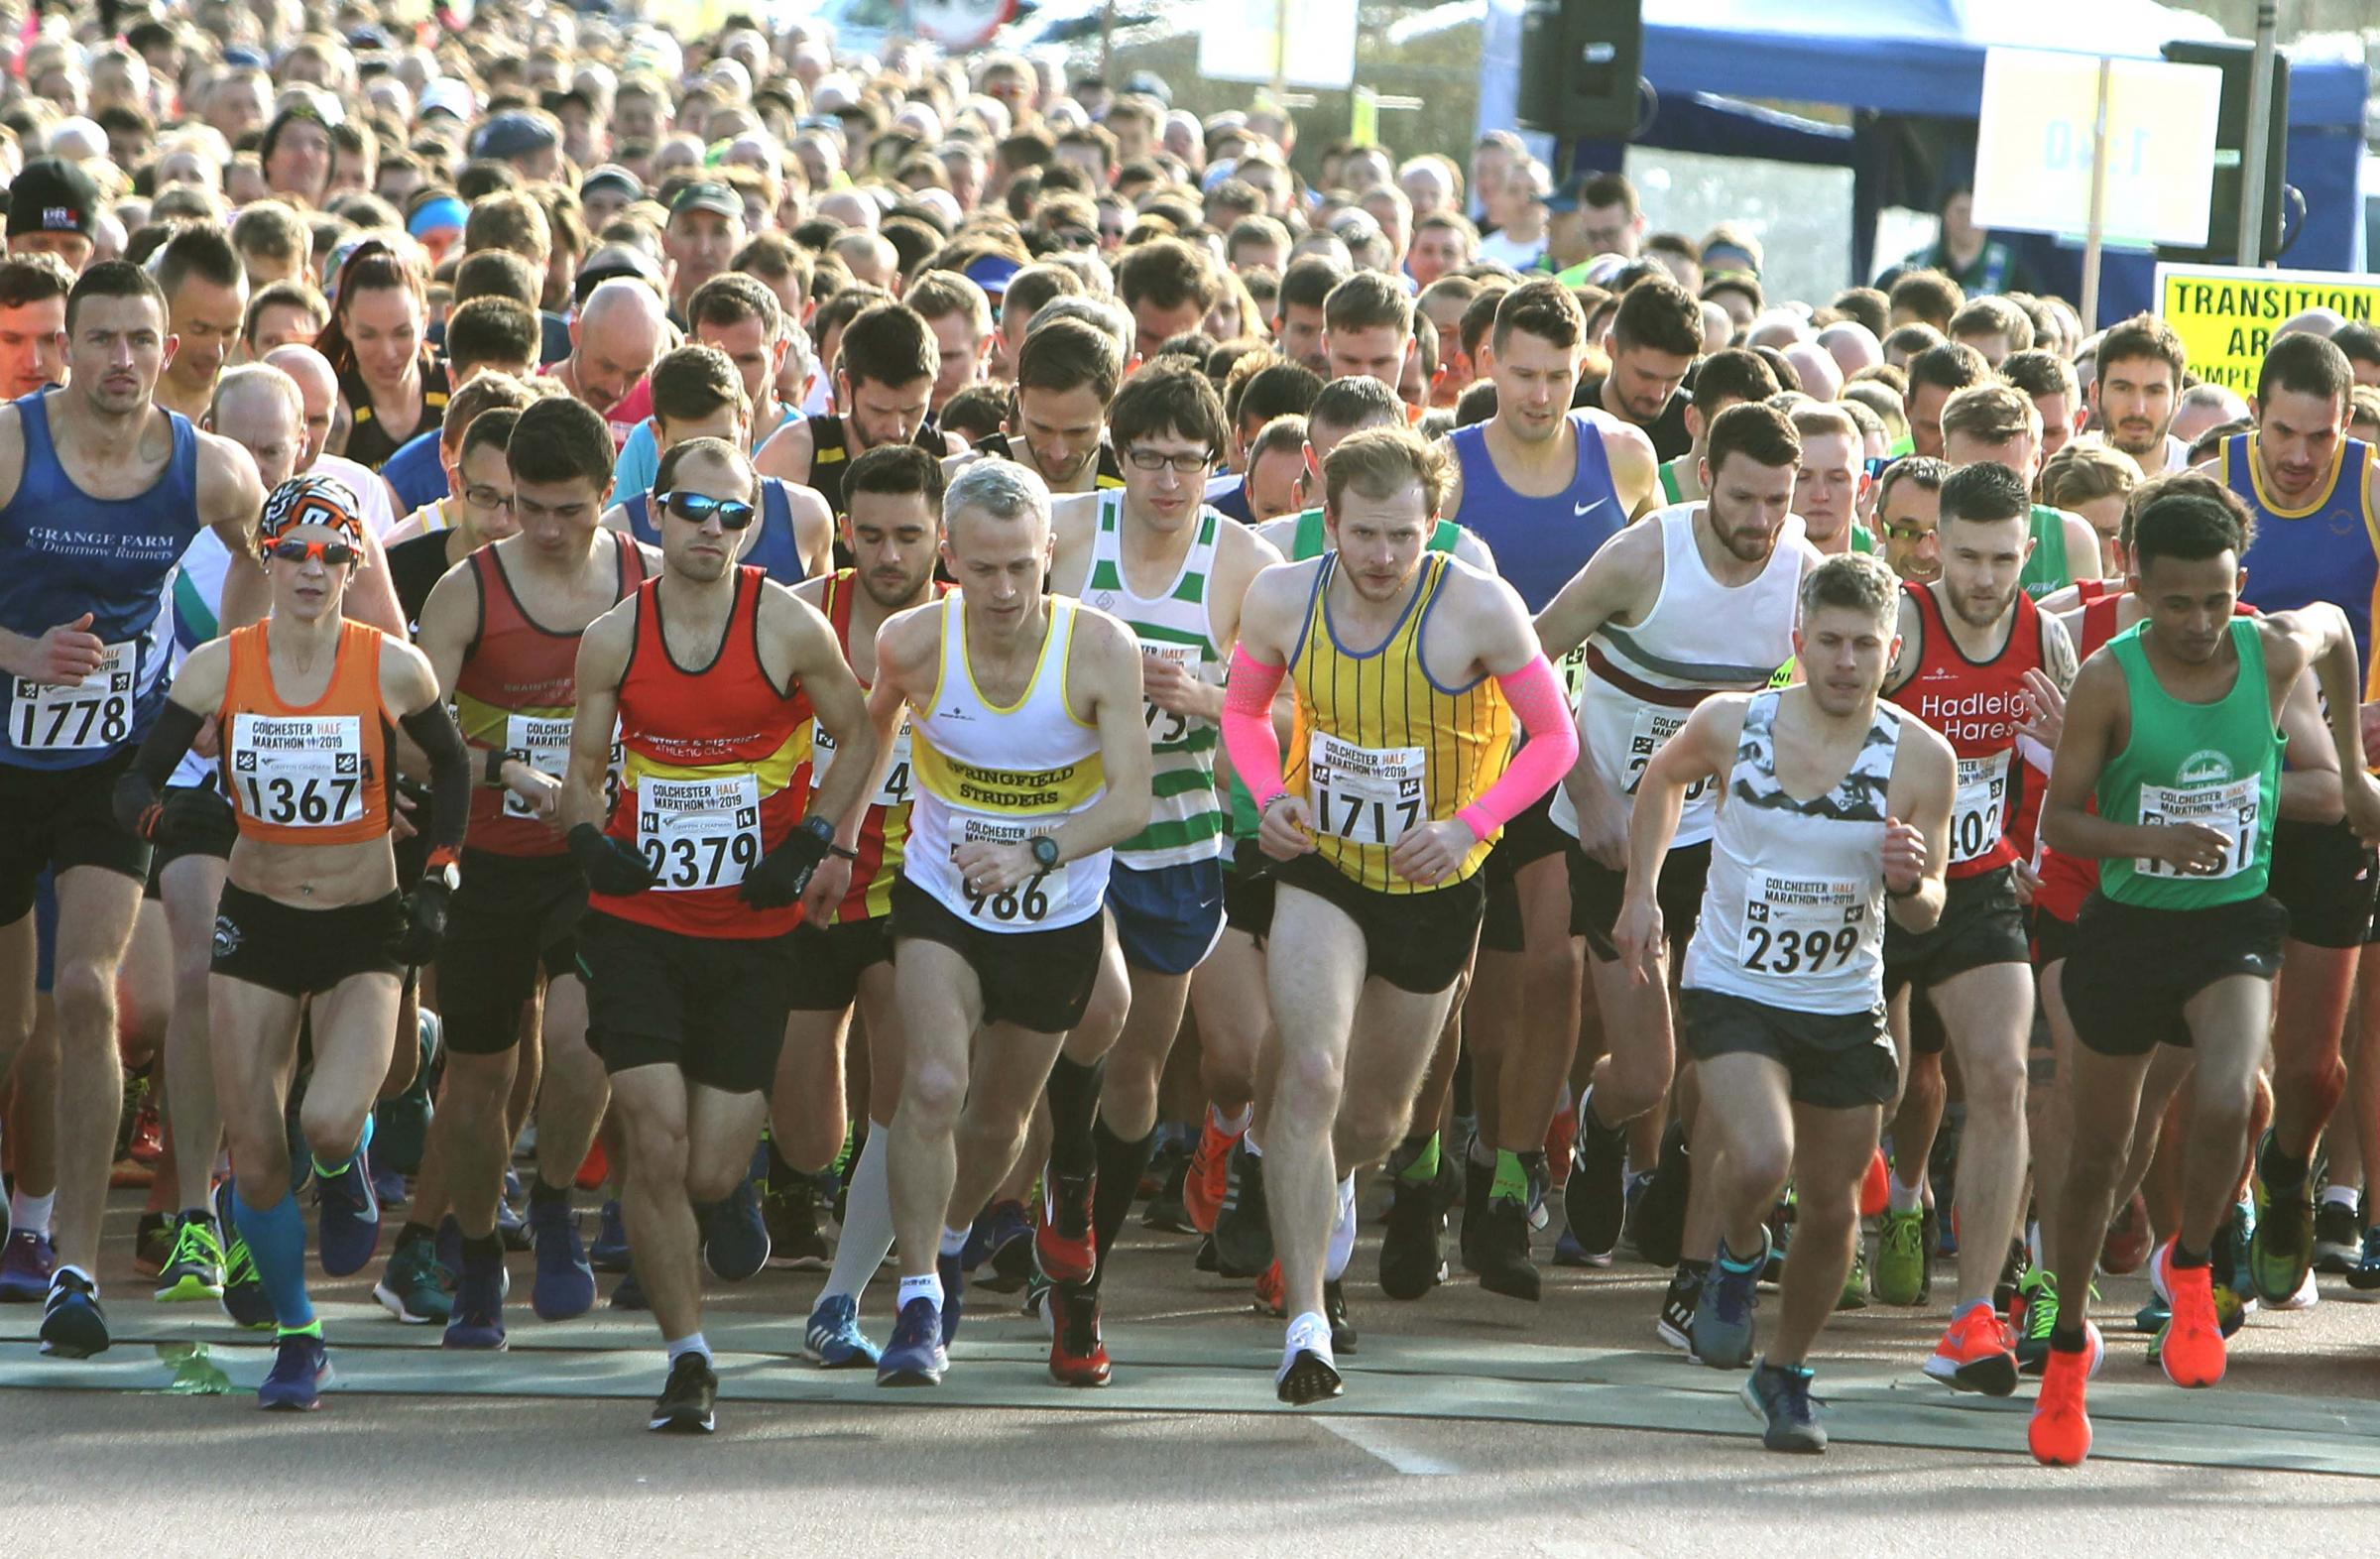 RESULTS: Here are the Colchester Half Marathon's results 2019